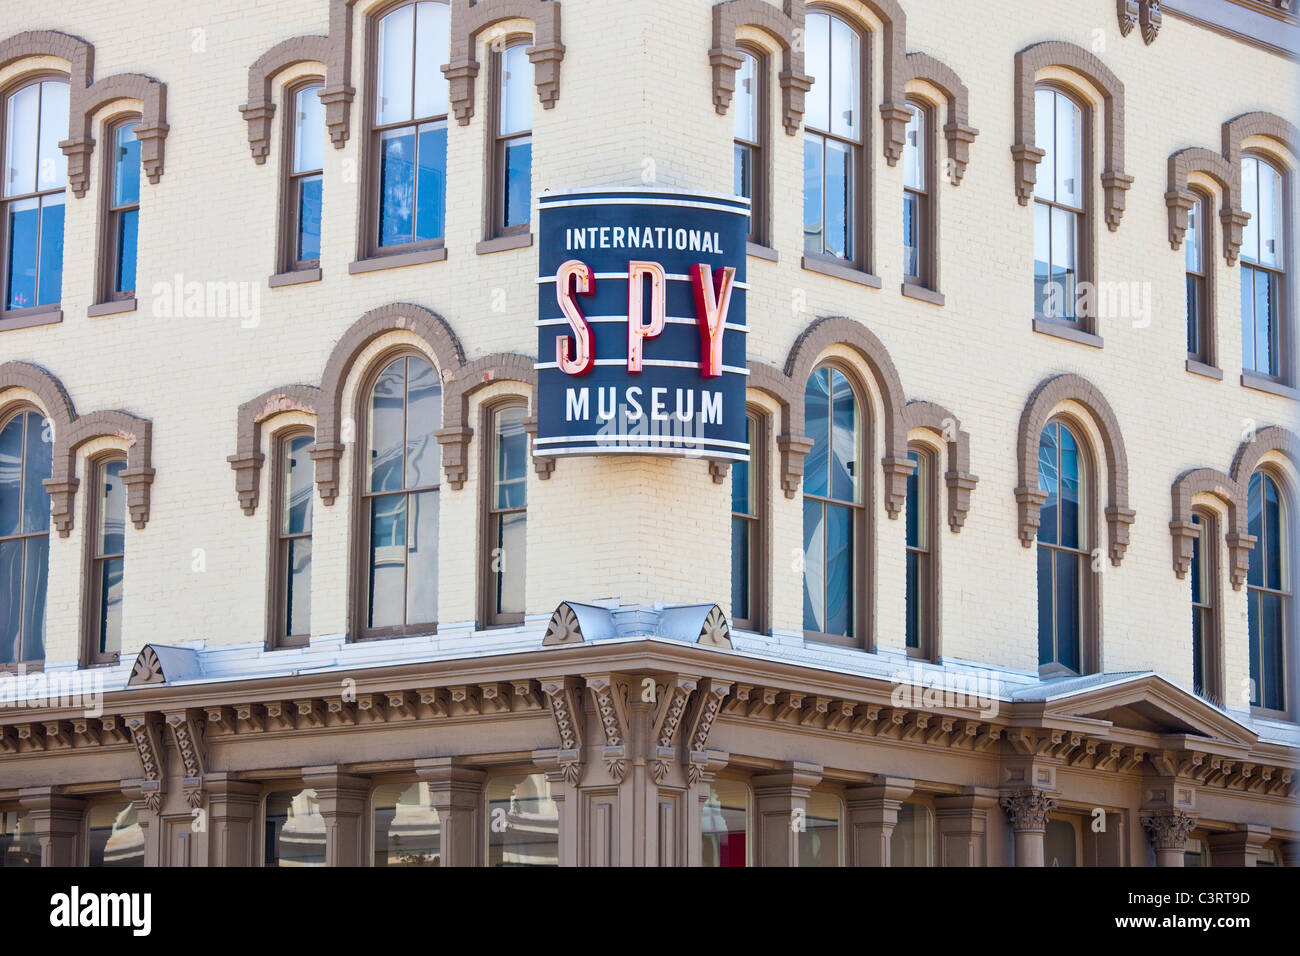 International Spy Museum, Washington DC - Stock Image